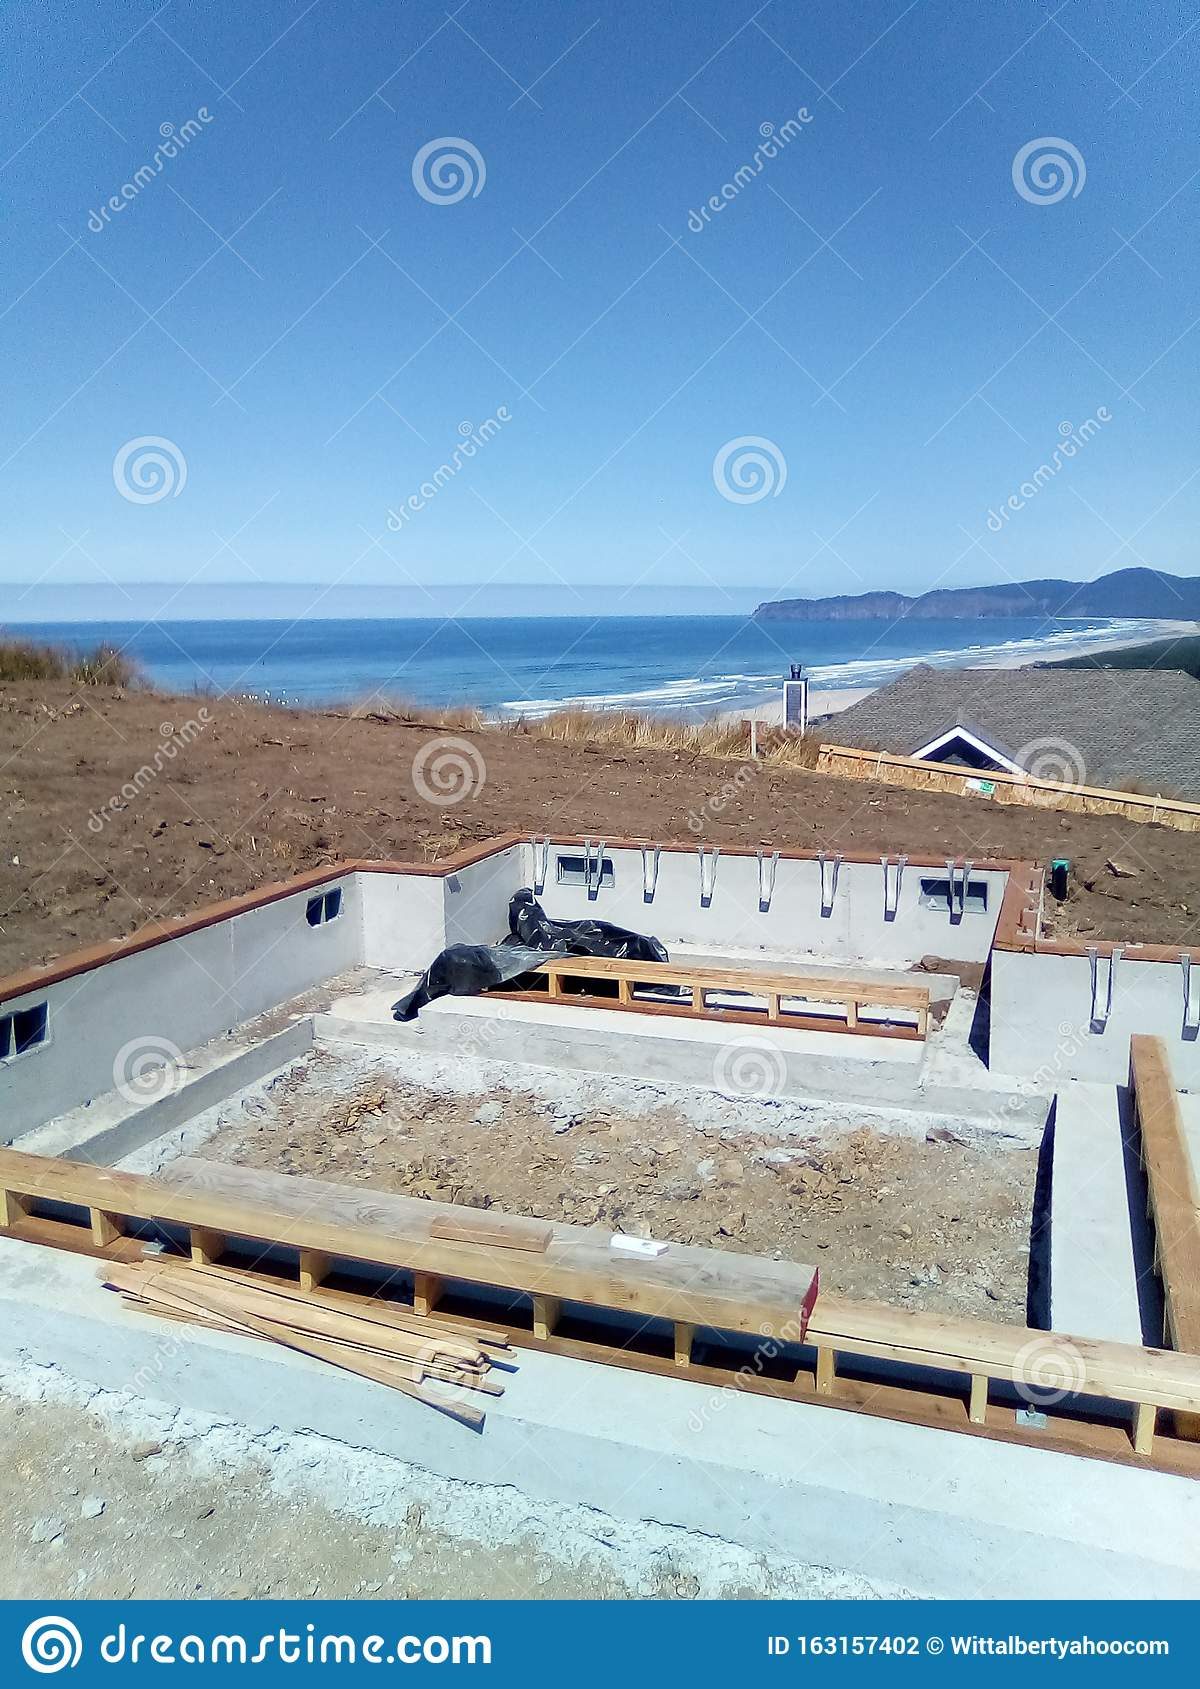 Construction On Hillside Stock Photo Image Of Ocean 163157402